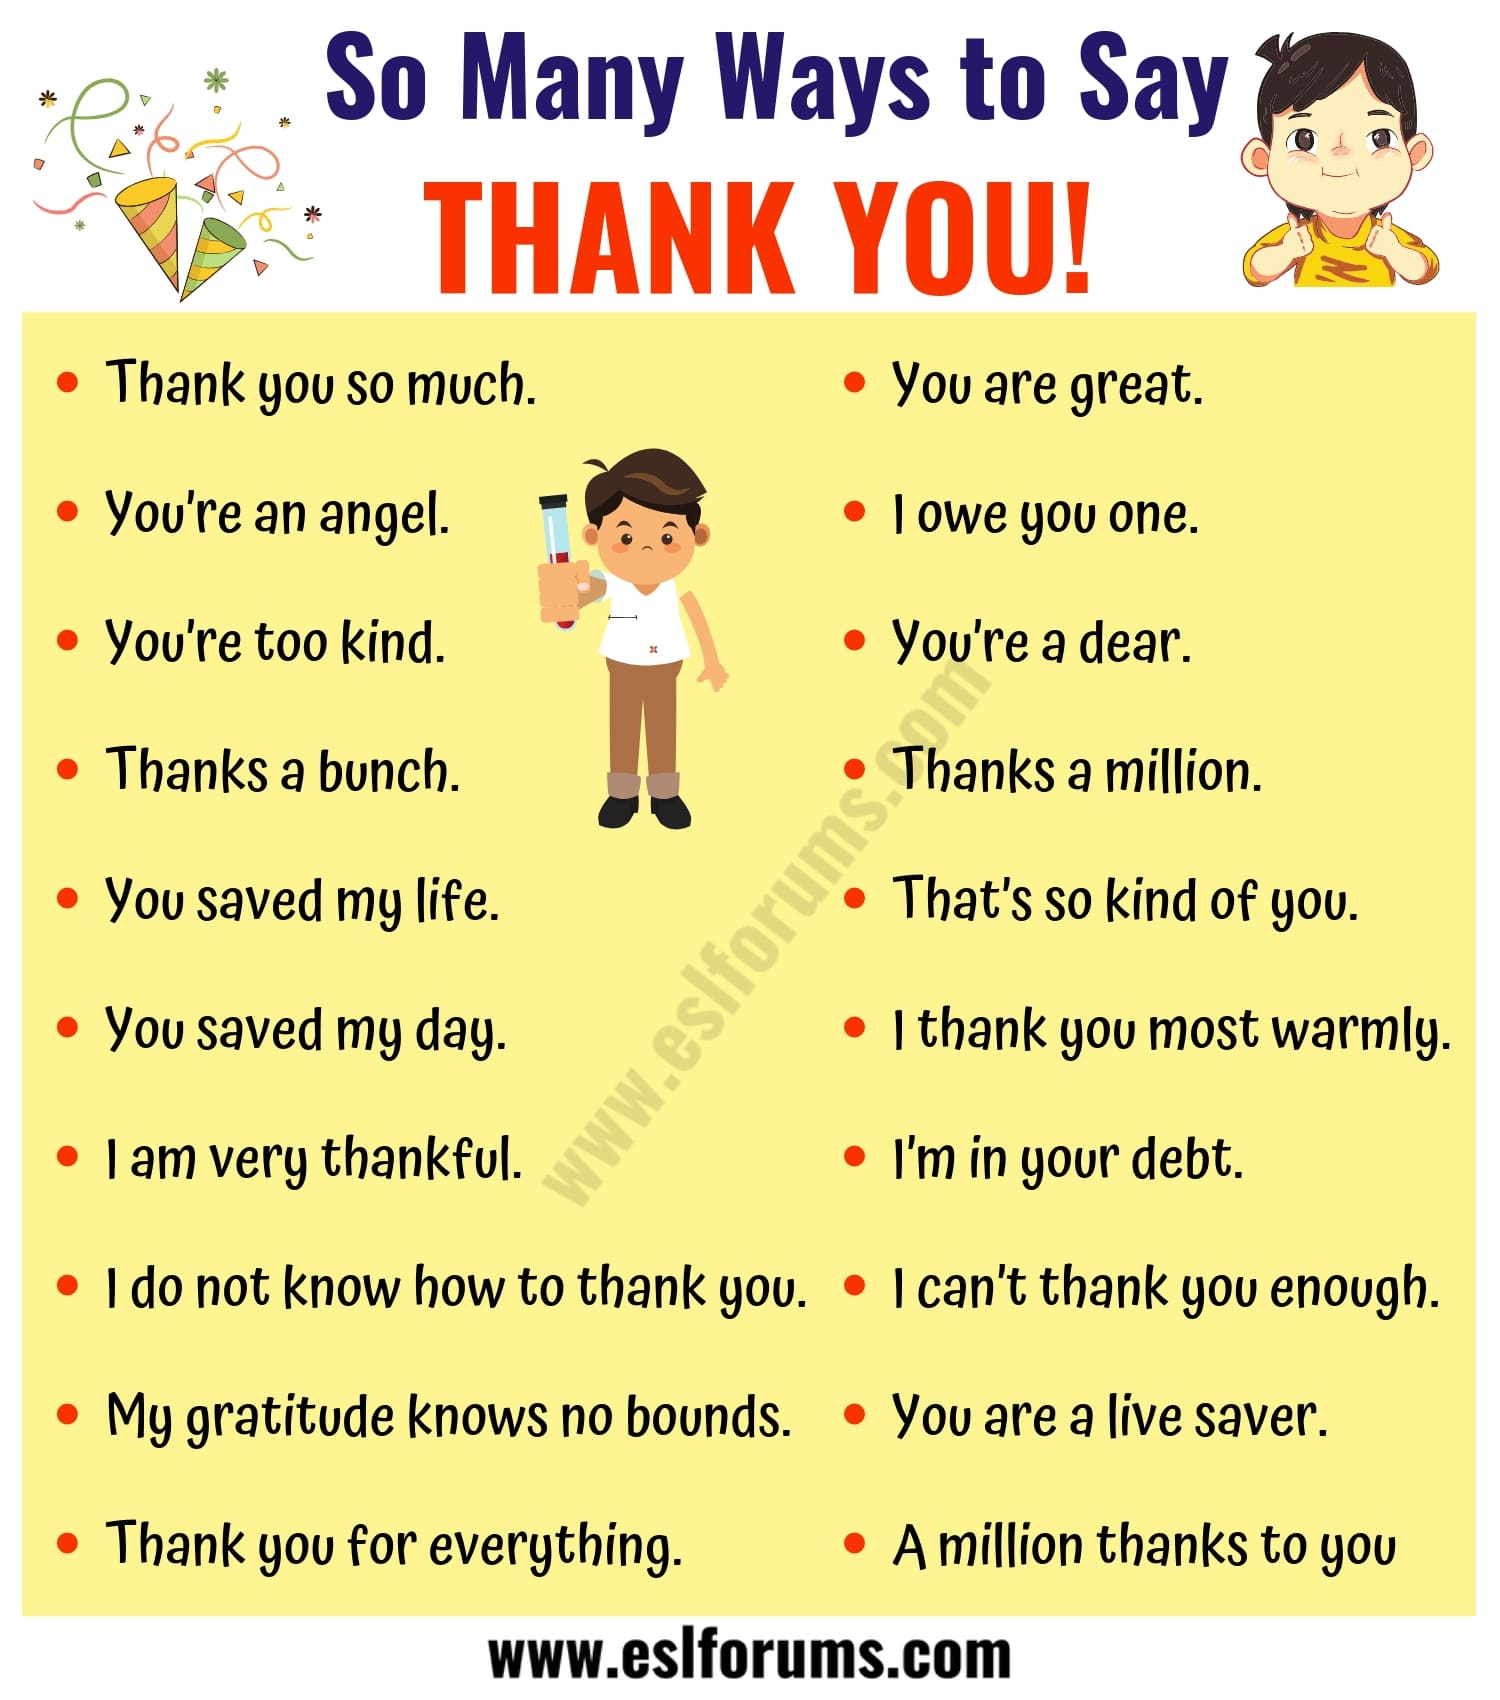 THANK YOU Synonym | 41 Creative Ways to Say Thank You!